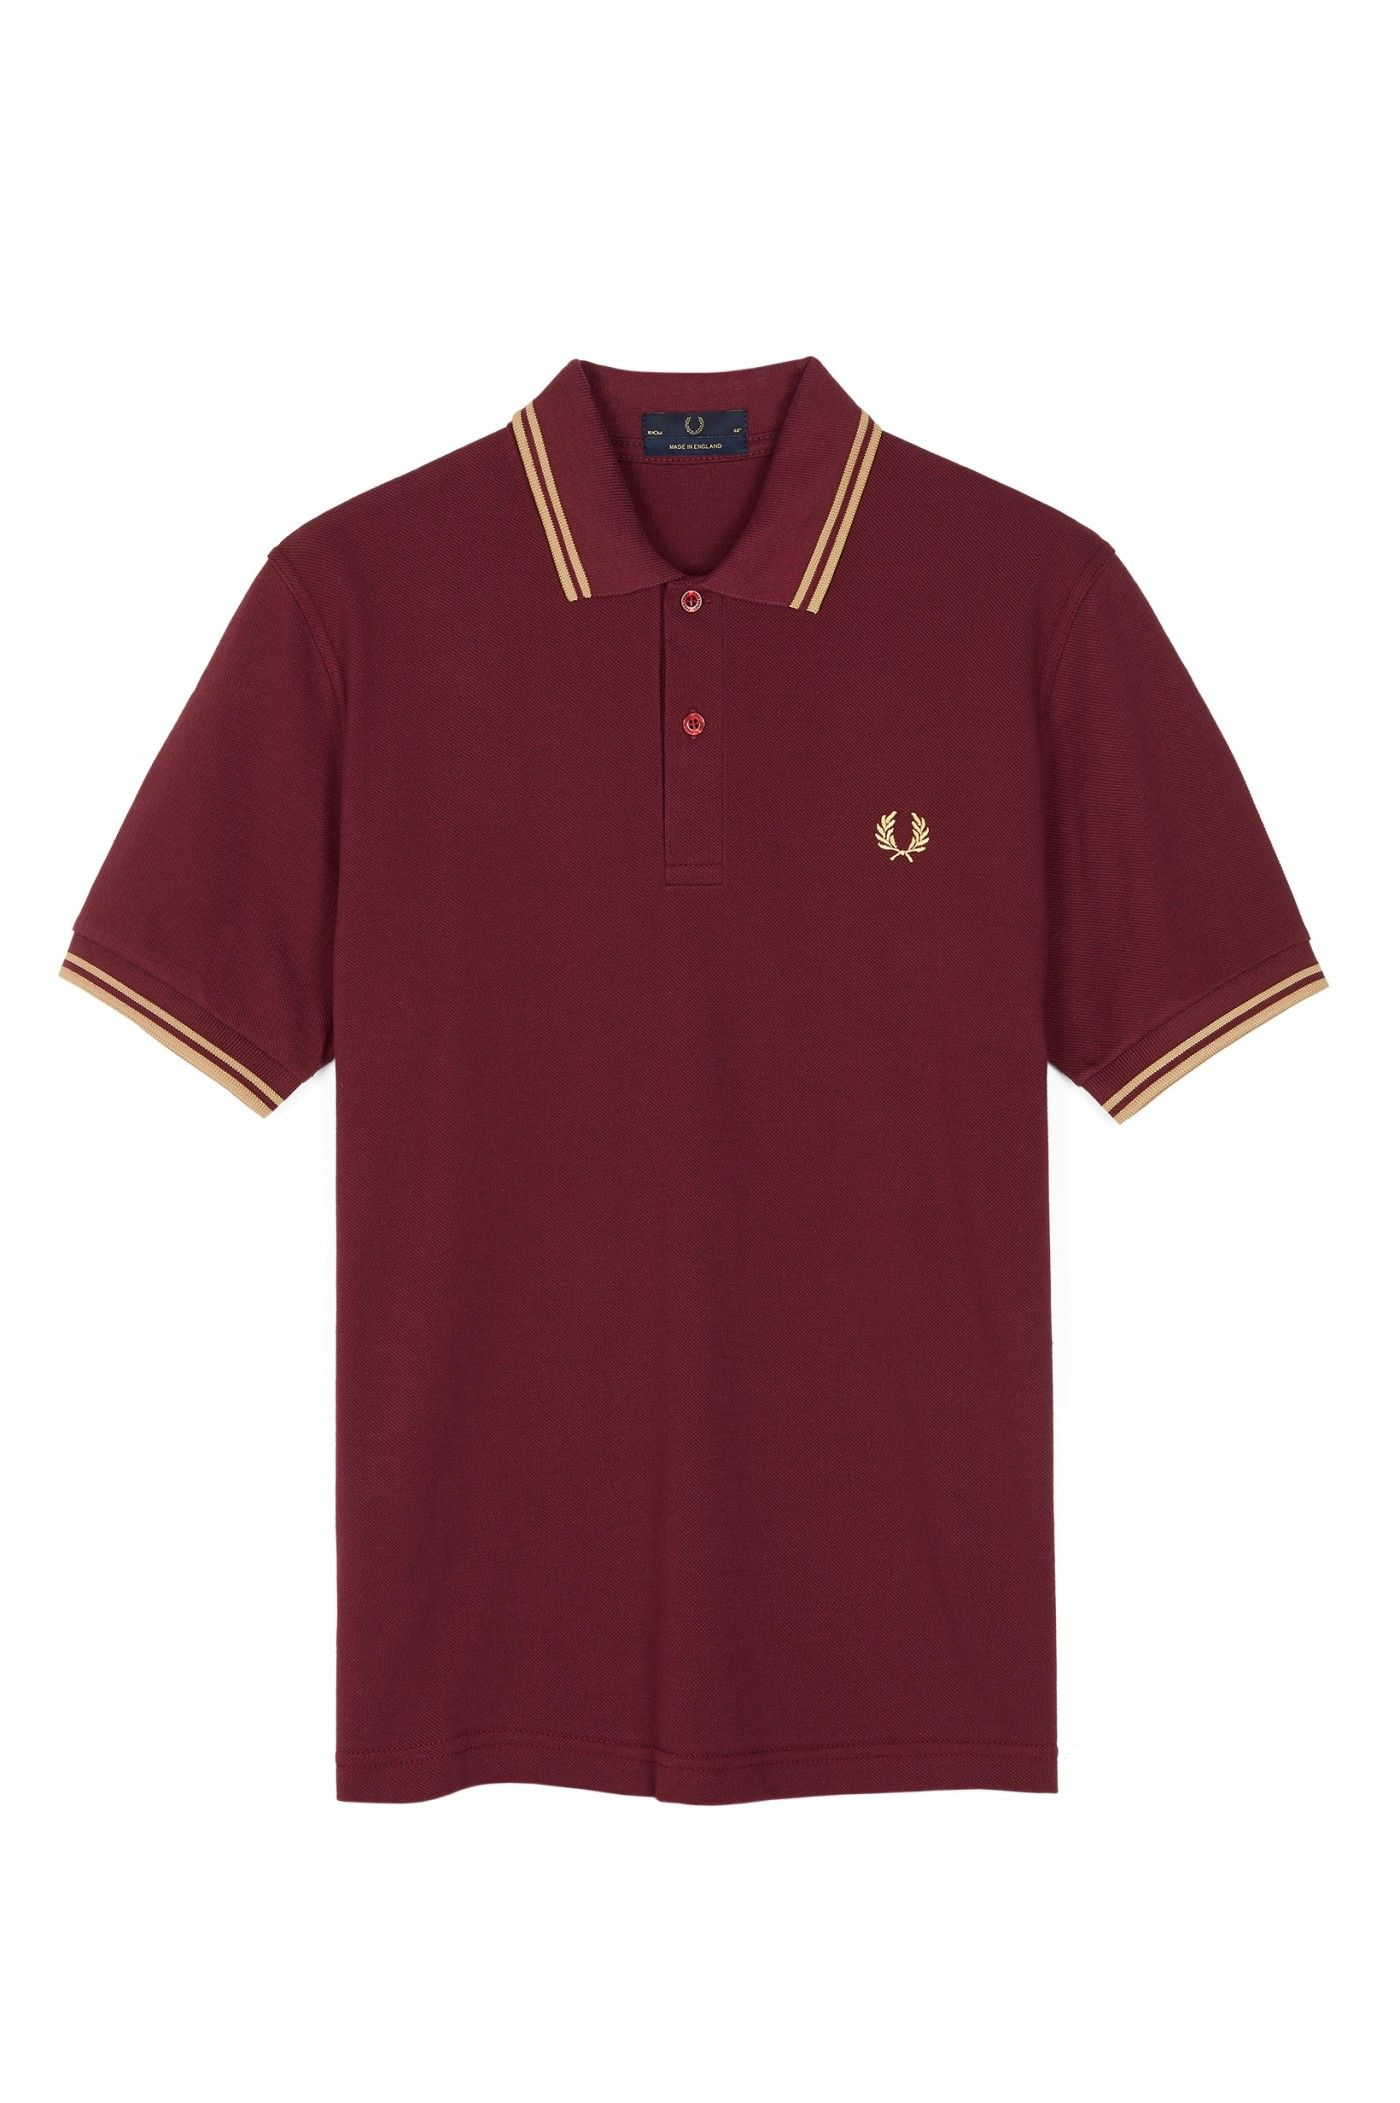 Fred Perry - M12 Aubergine / Champagne / Champagne